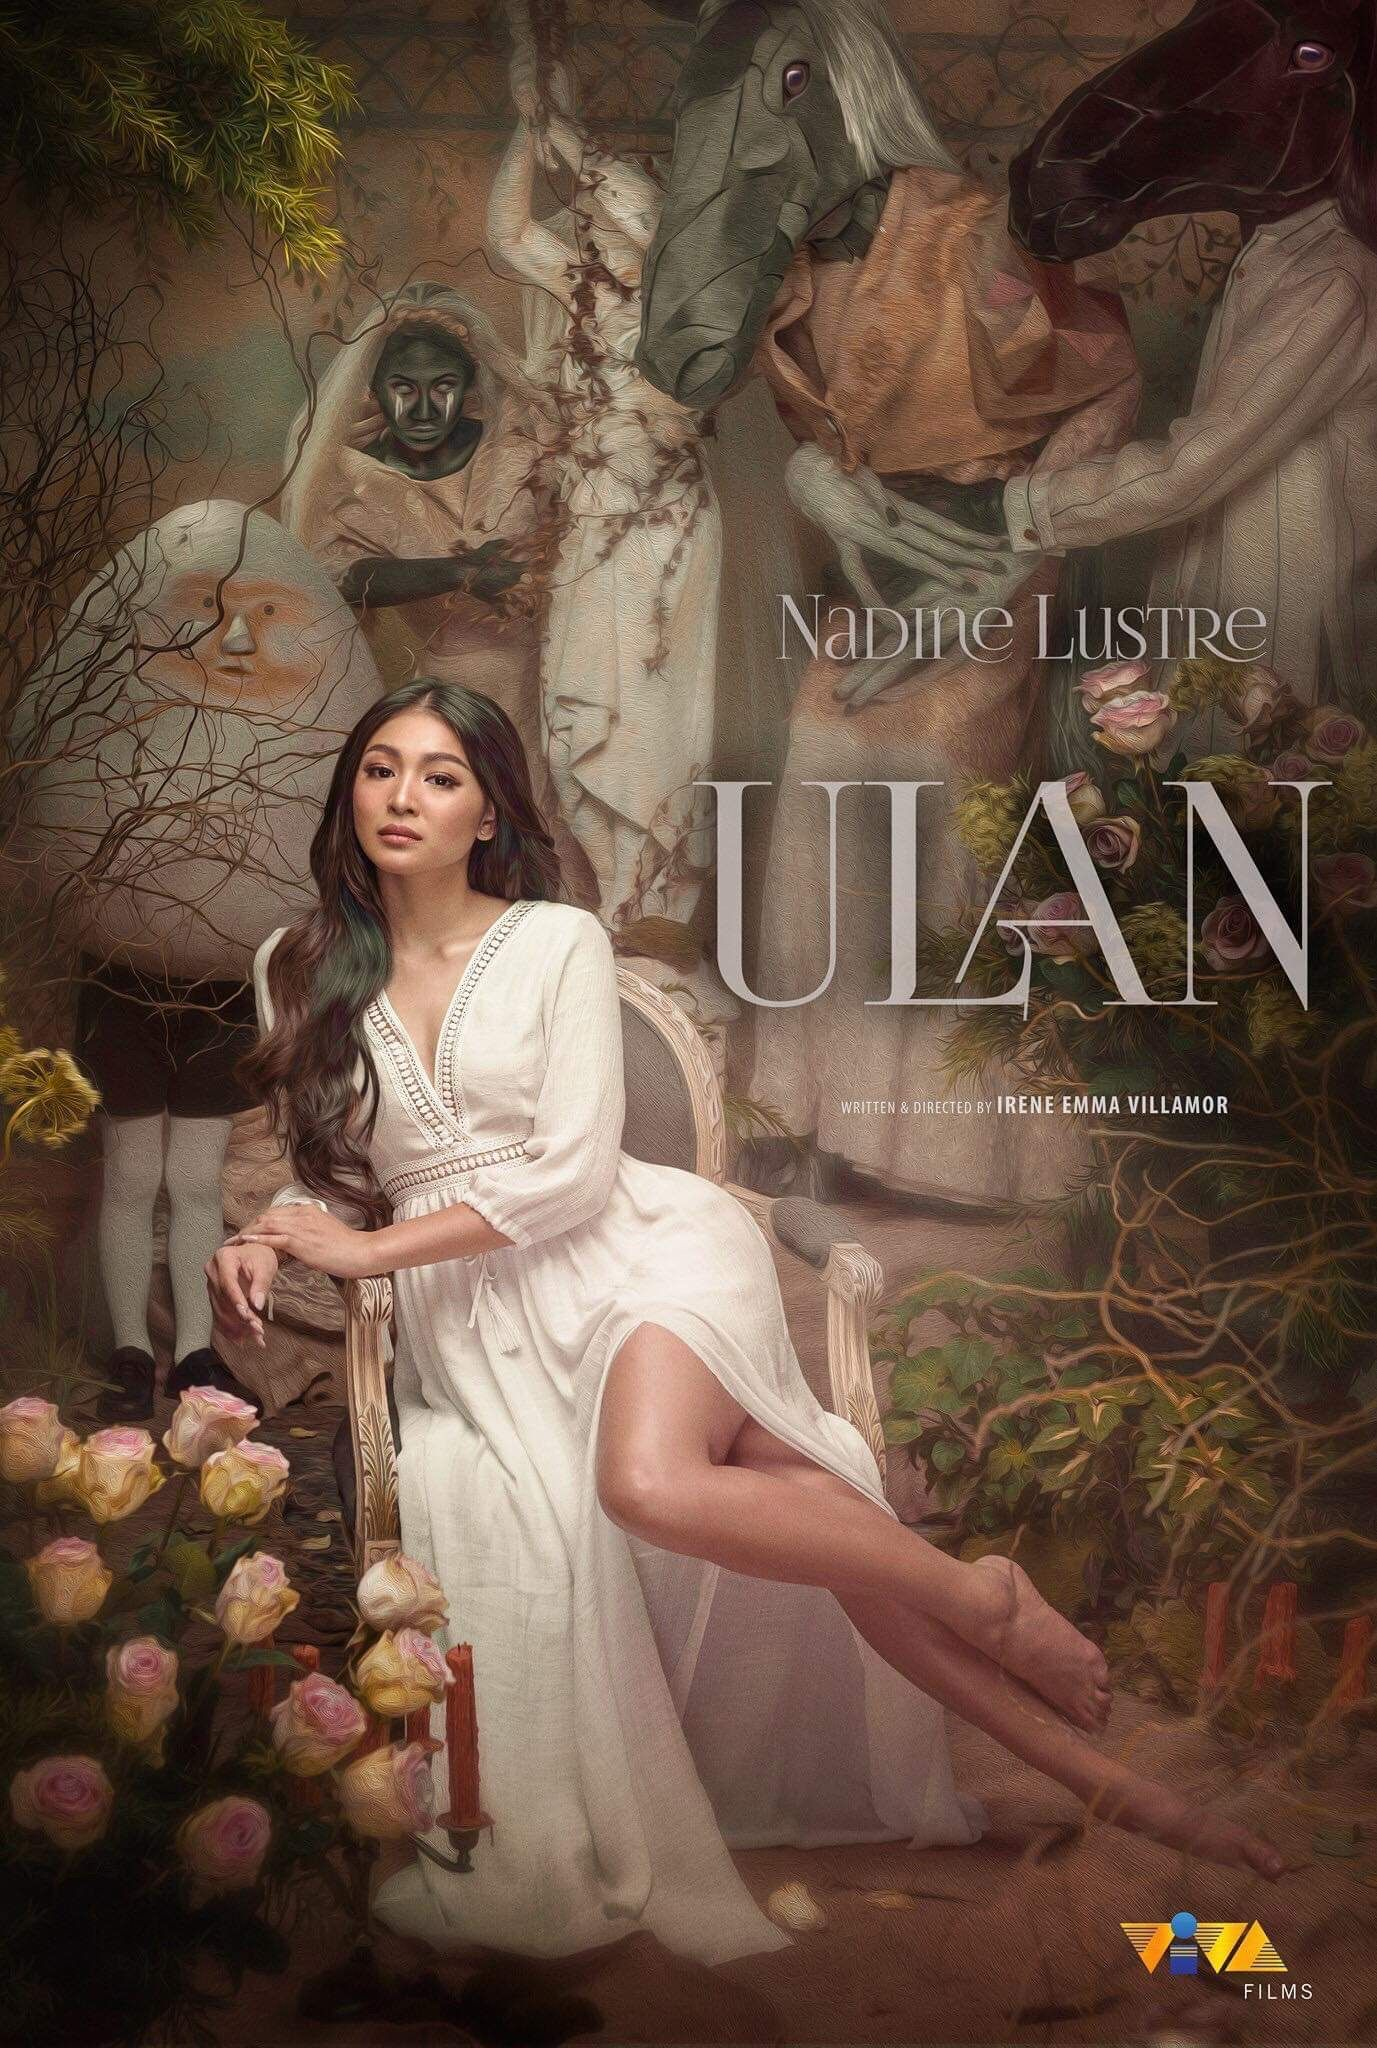 Nadine Lustre For Ulan Ctto Full Movies Pinoy Movies Nadine Lustre